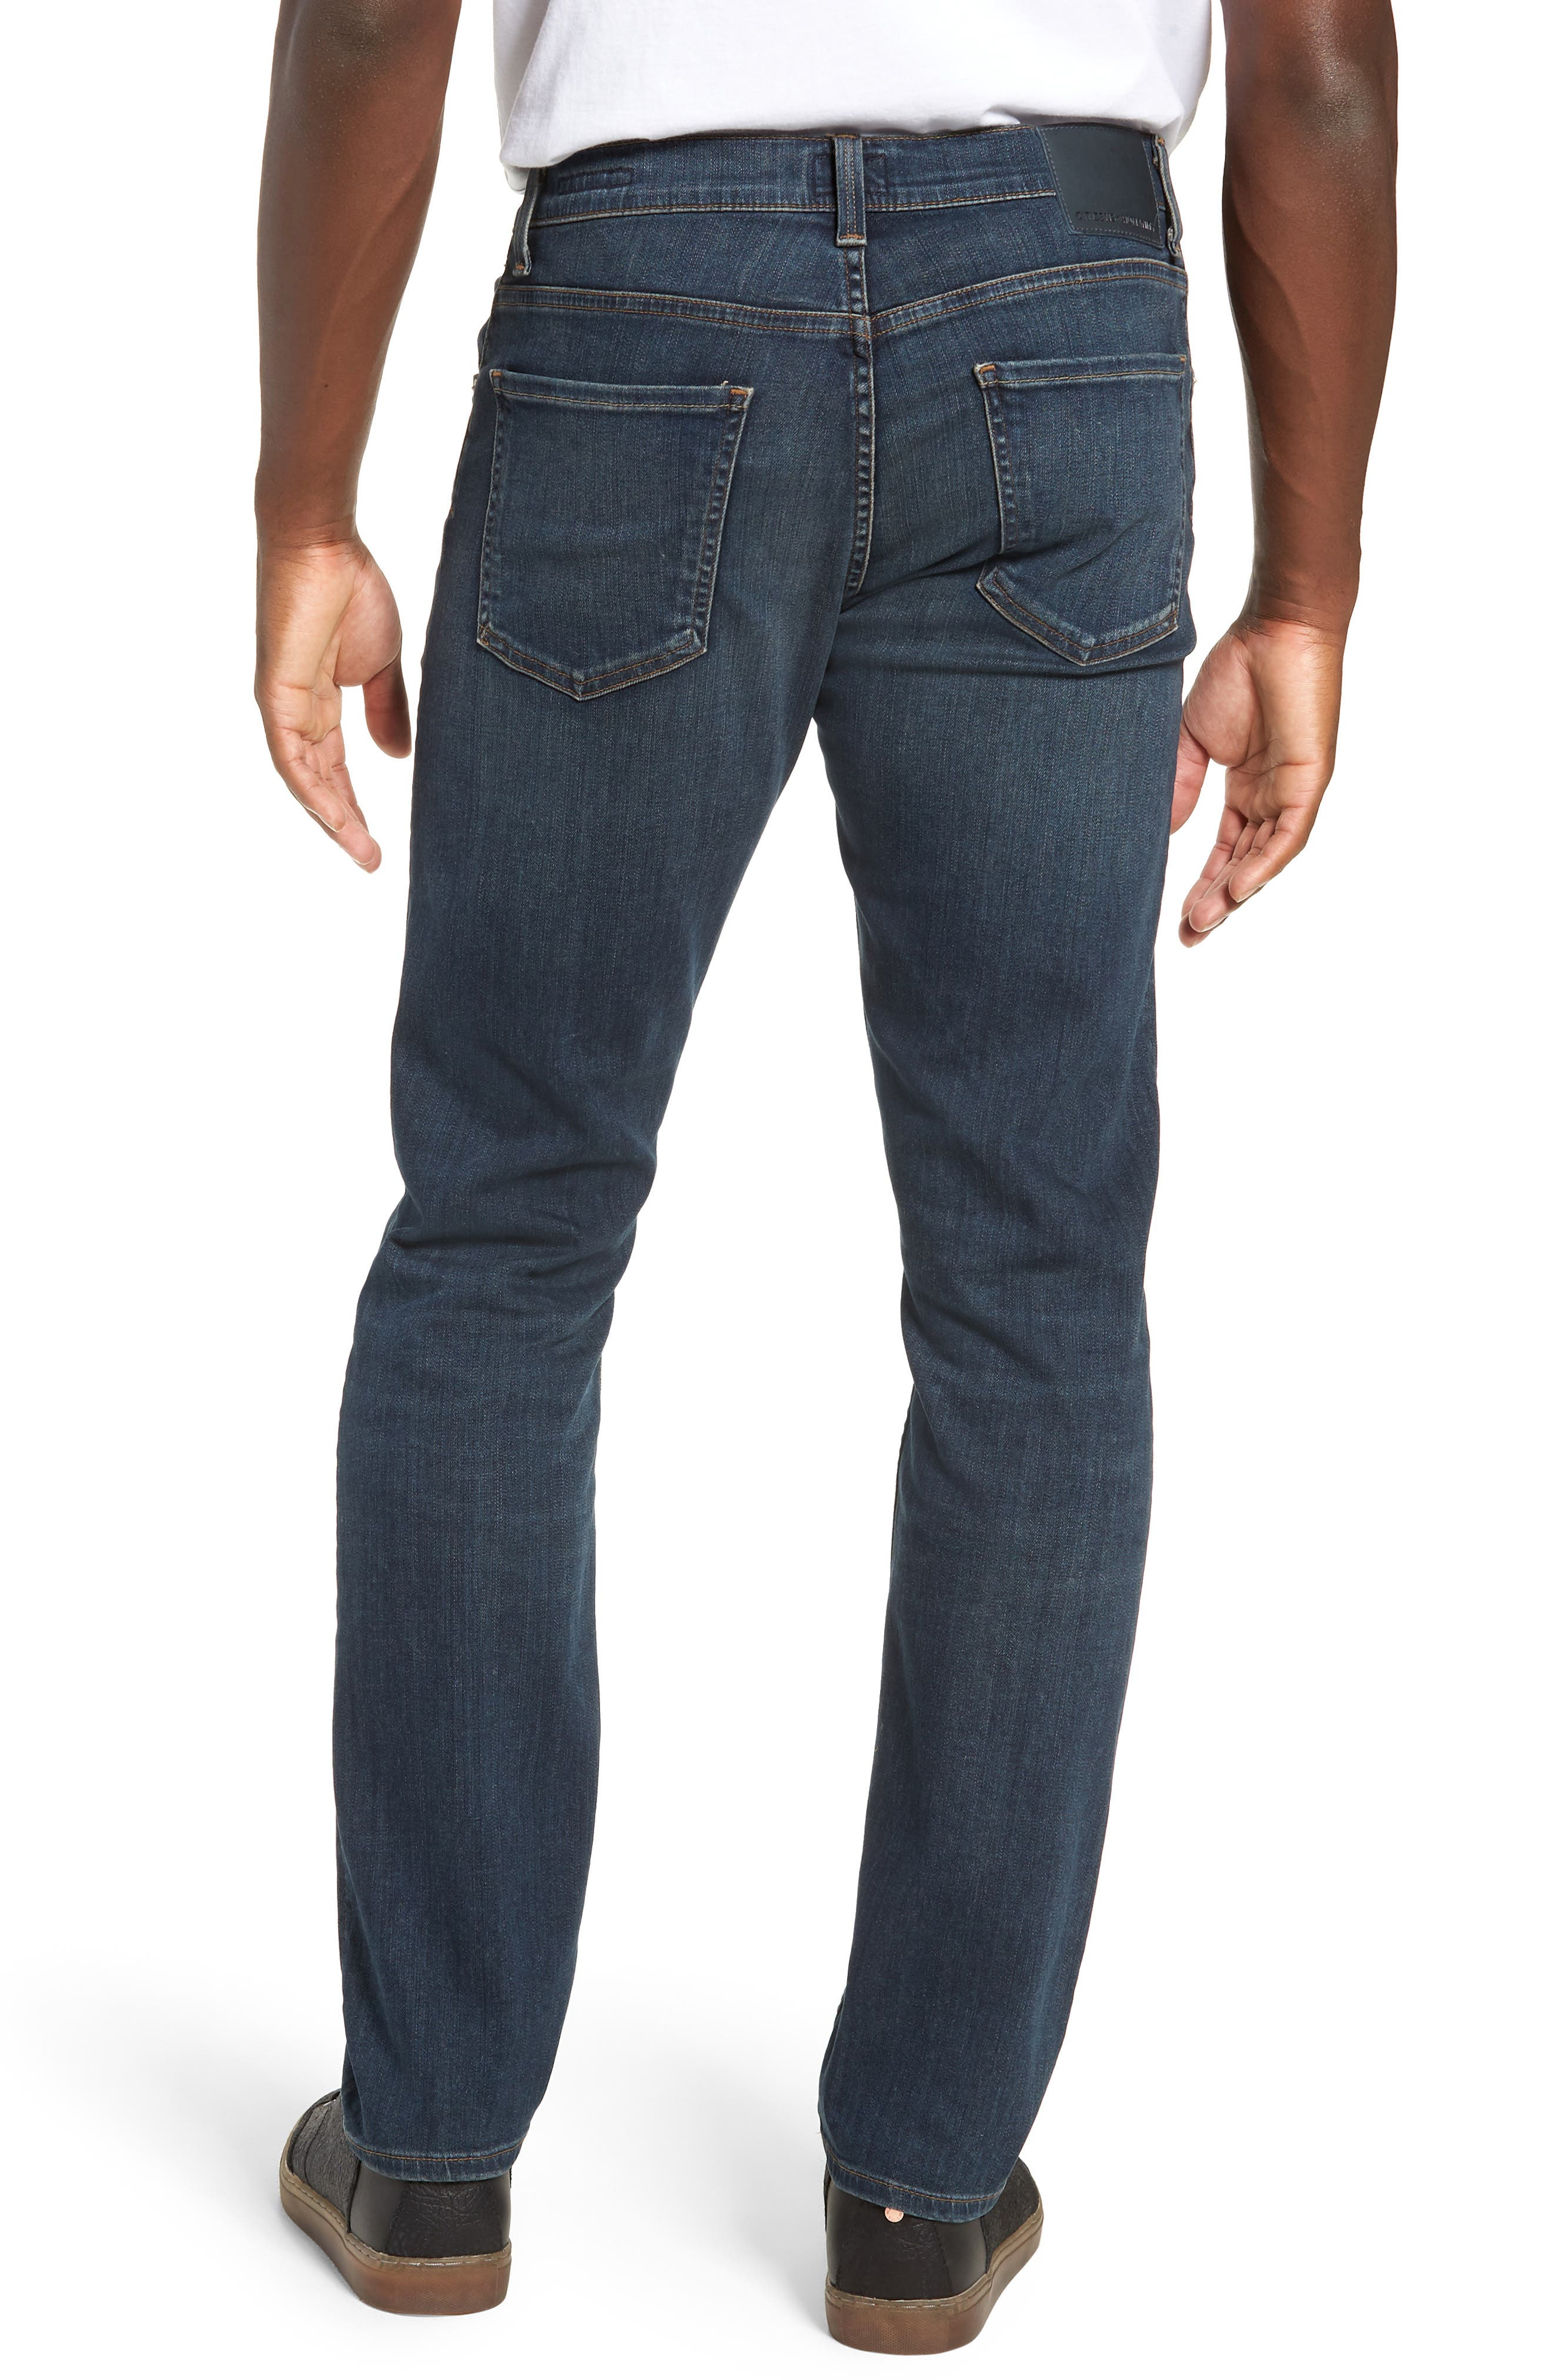 PERFORM - Bowery Slim Fit Jeans,                             Alternate thumbnail 2, color,                             424